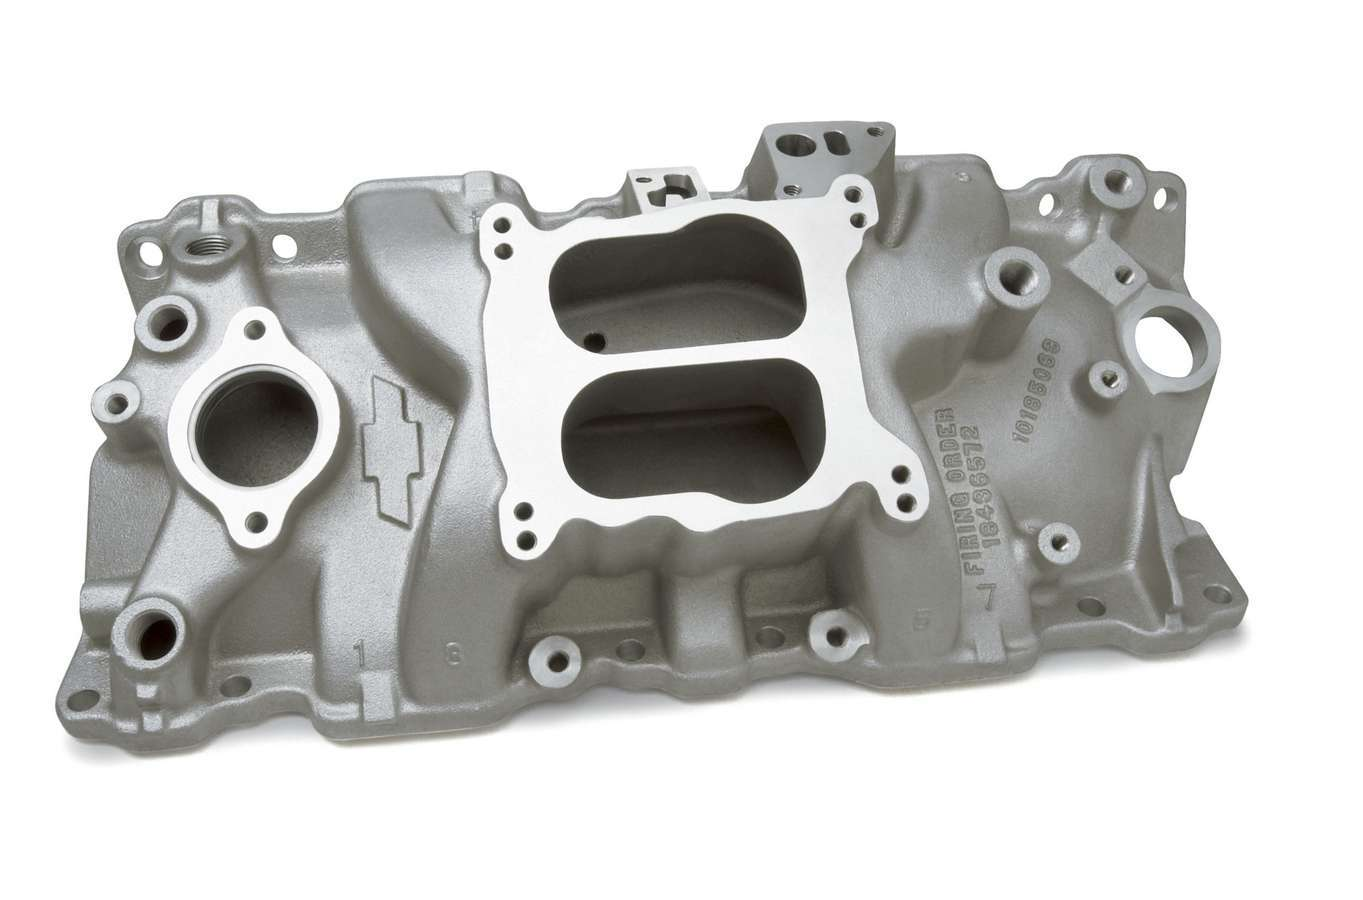 GM Performance 10185063 Intake Manifold, ZZ-Series, Spread / Square Bore, Dual Plane, Aluminum, Natural, Small Block Chevy, Each